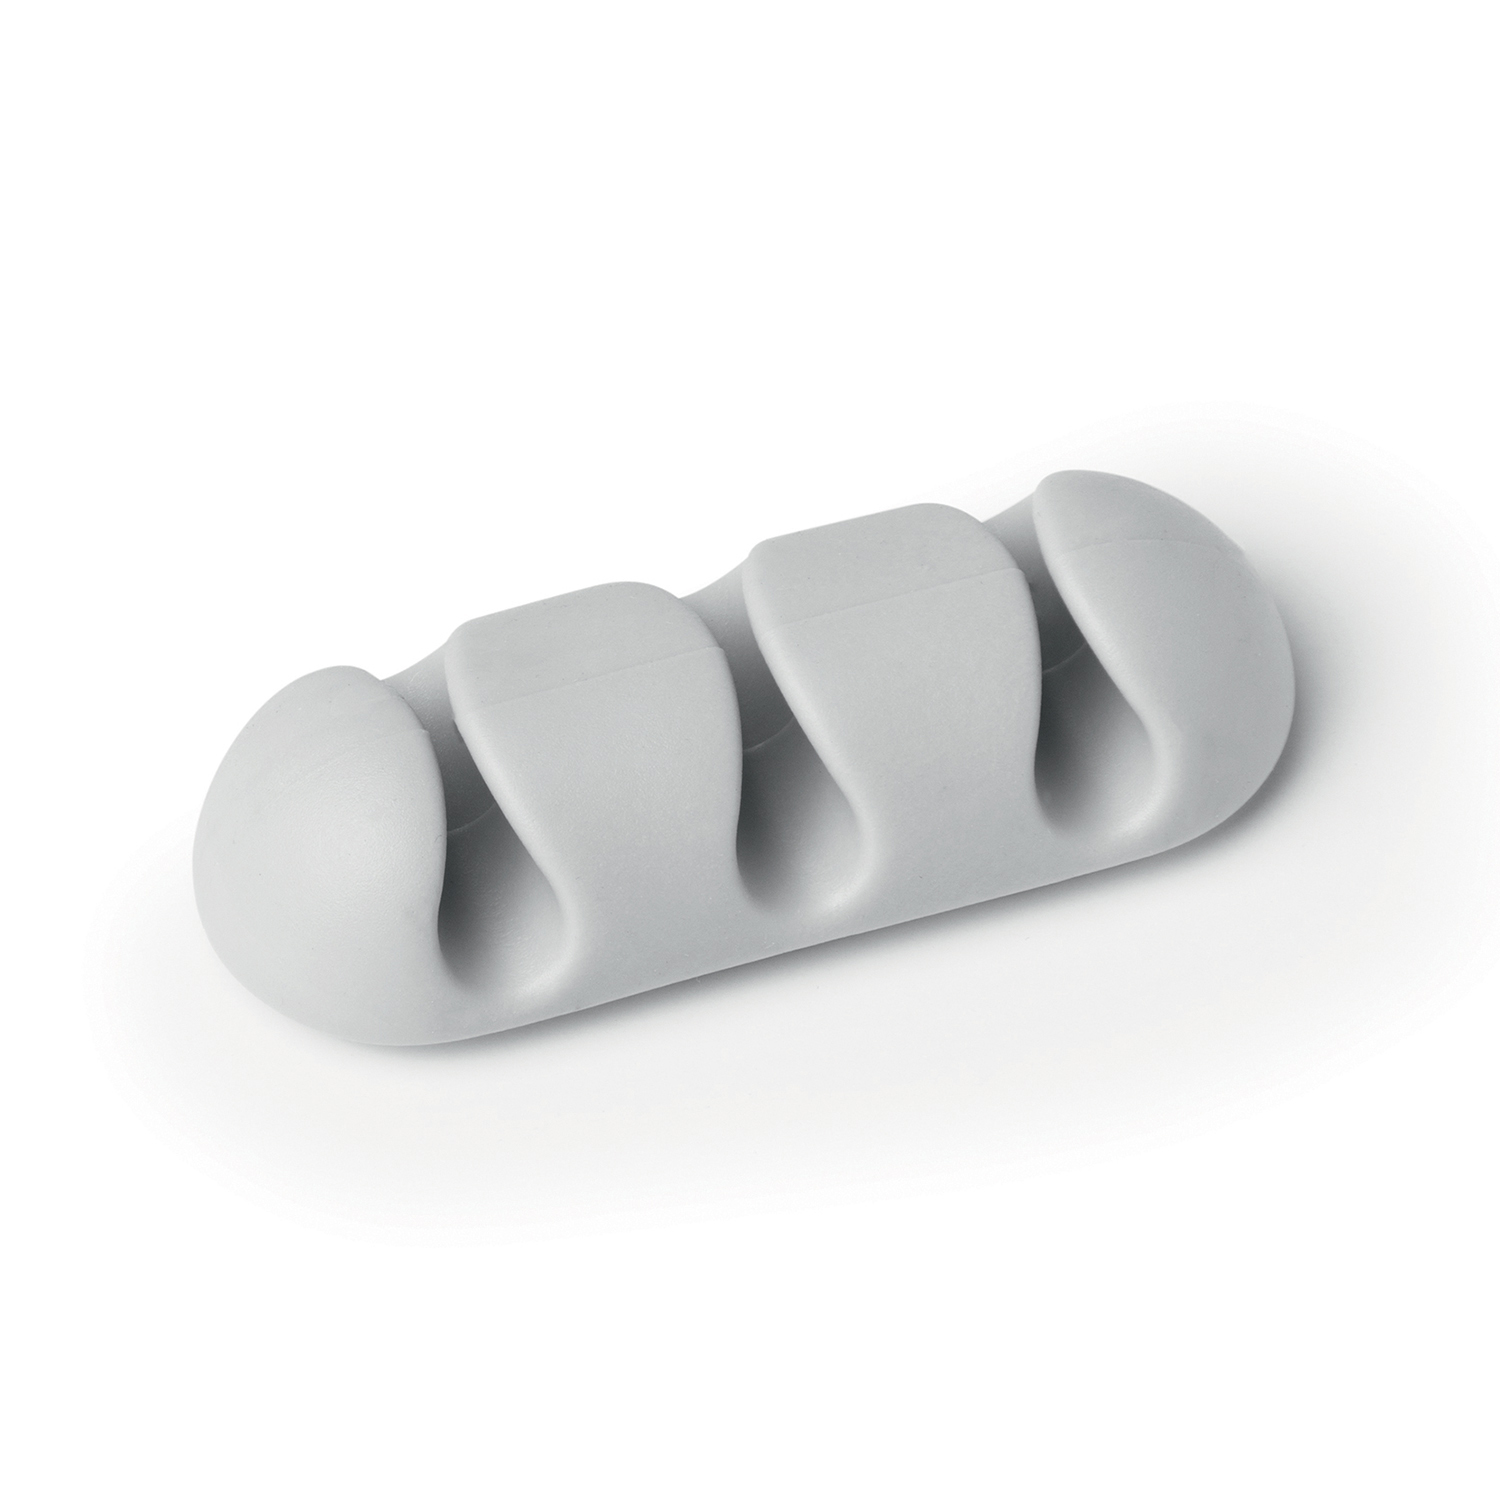 Durable CAVOLINE CLIP3 Self Adhesive Cable Clips Grey Ref 503910 [Pack 2]